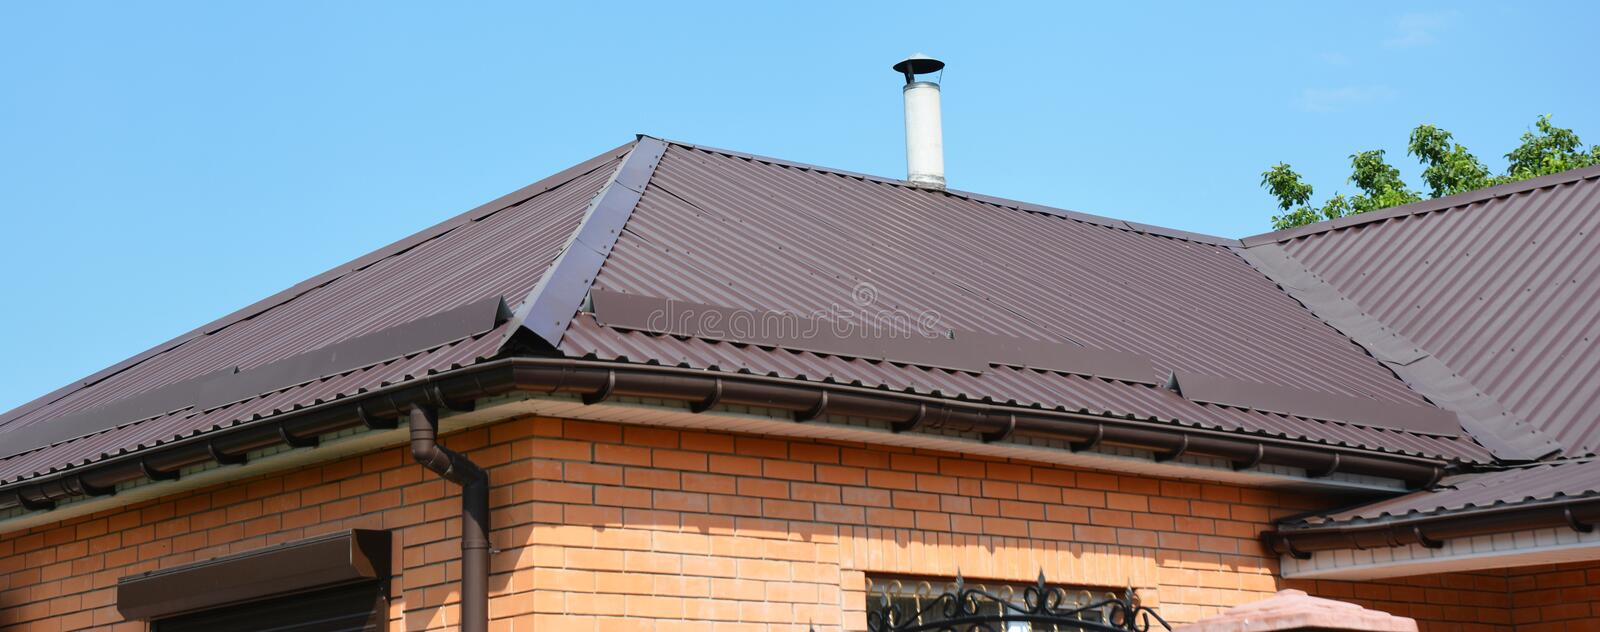 Problem areas for metal roof and rain gutter waterproofing. Guttering, gutters, metal roofing house panorama royalty free stock photo